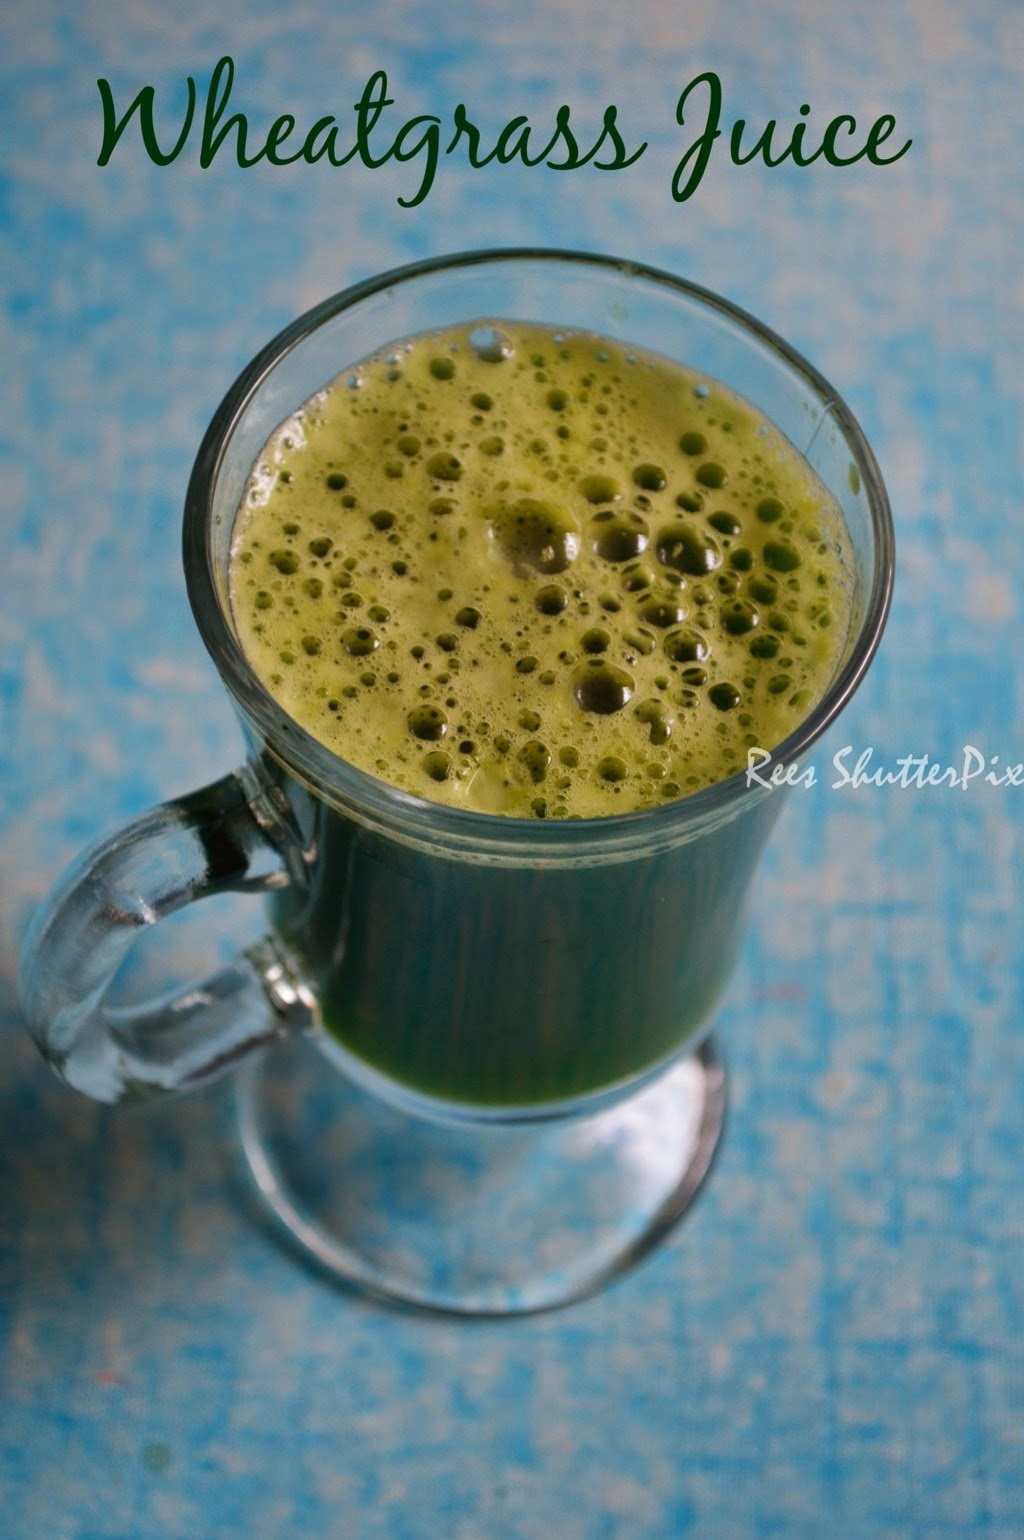 wheatgrass juice for weightloss